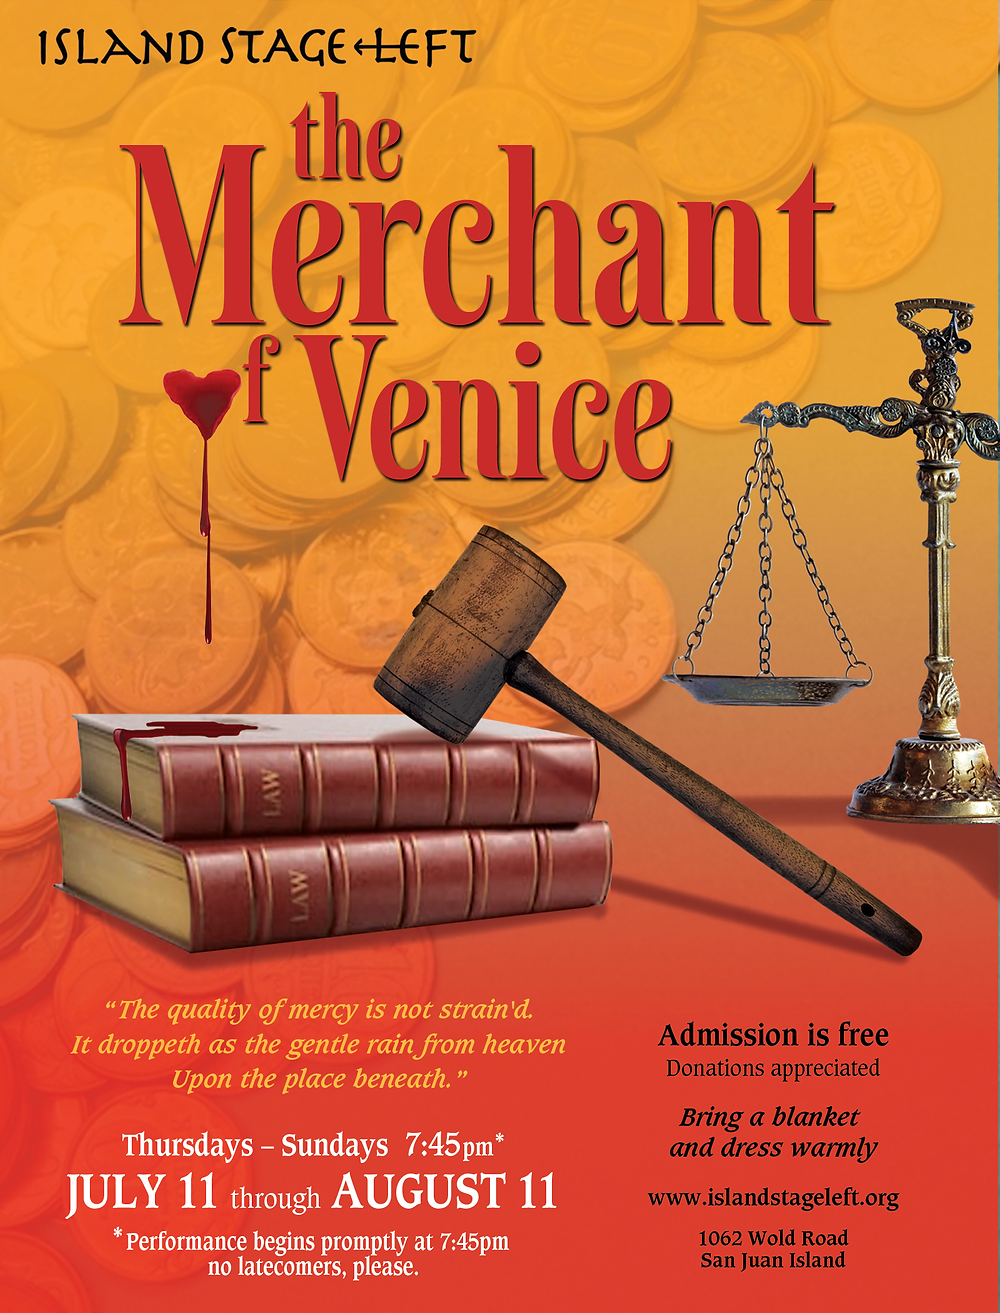 Summer 2019 - The Merchant of Venice